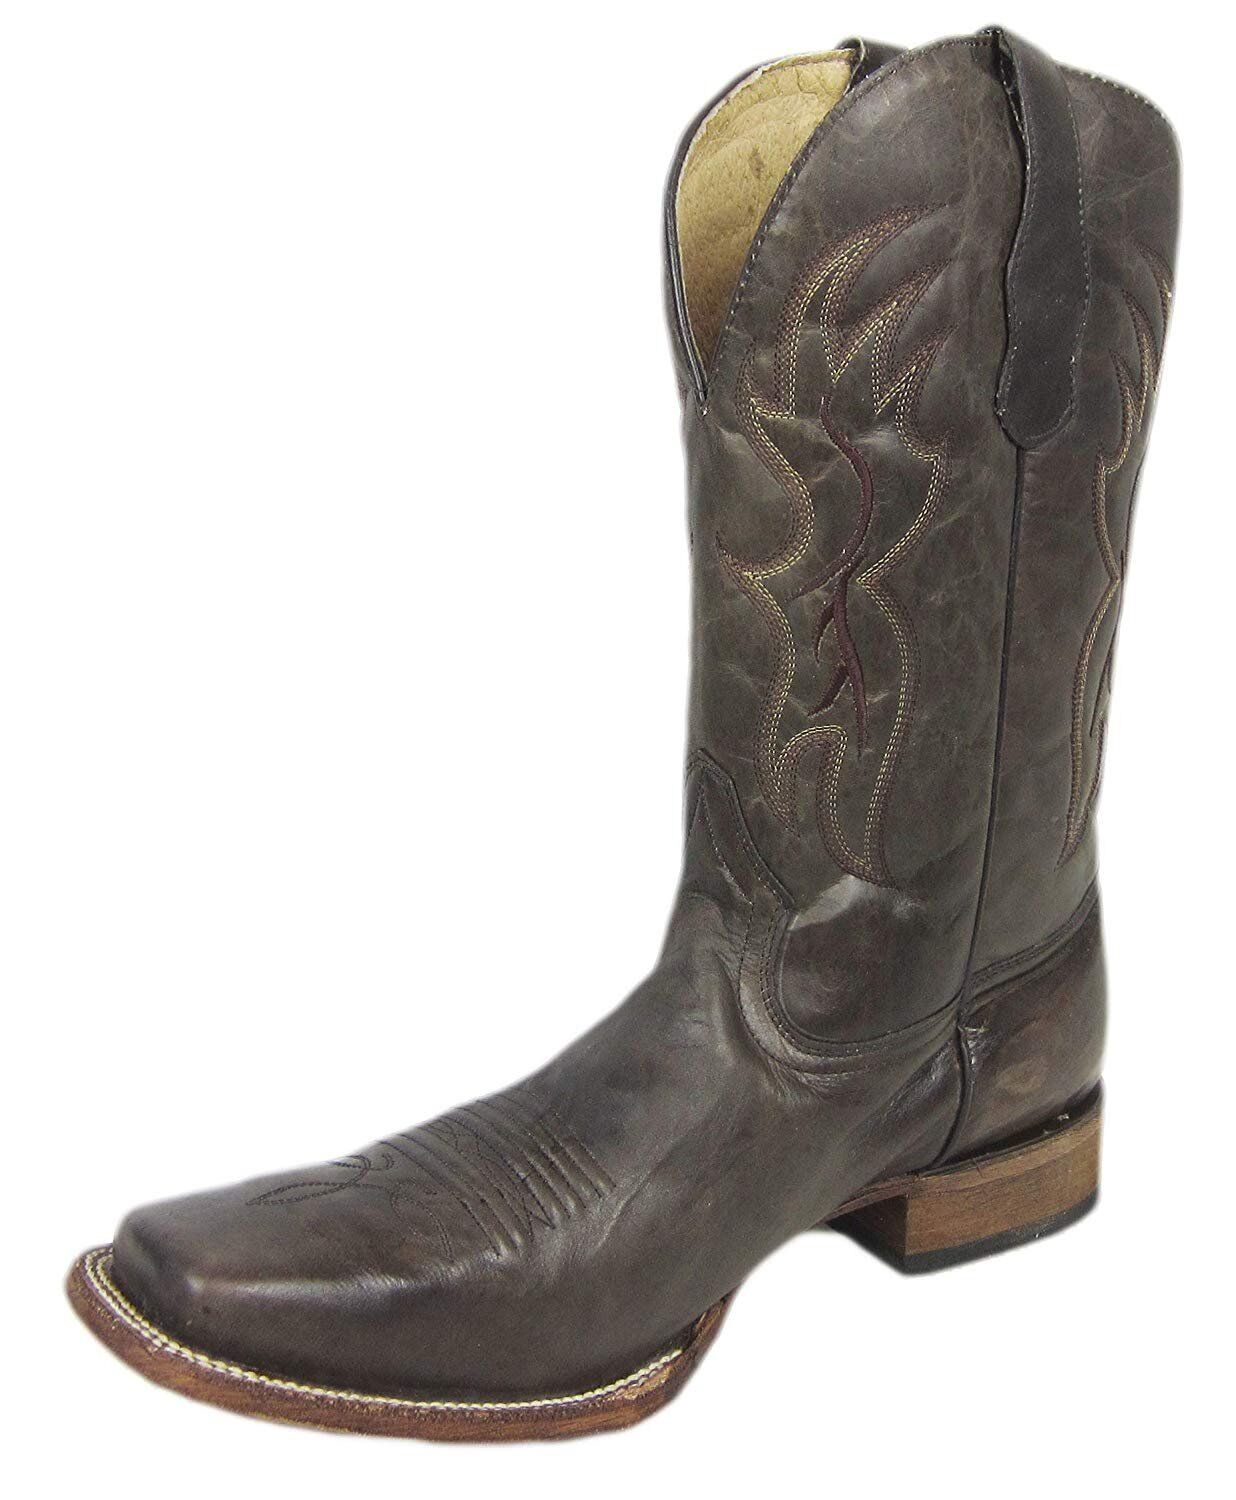 CORRAL Basic pour homme TABAC Western Bout Carré Chaussure L5094